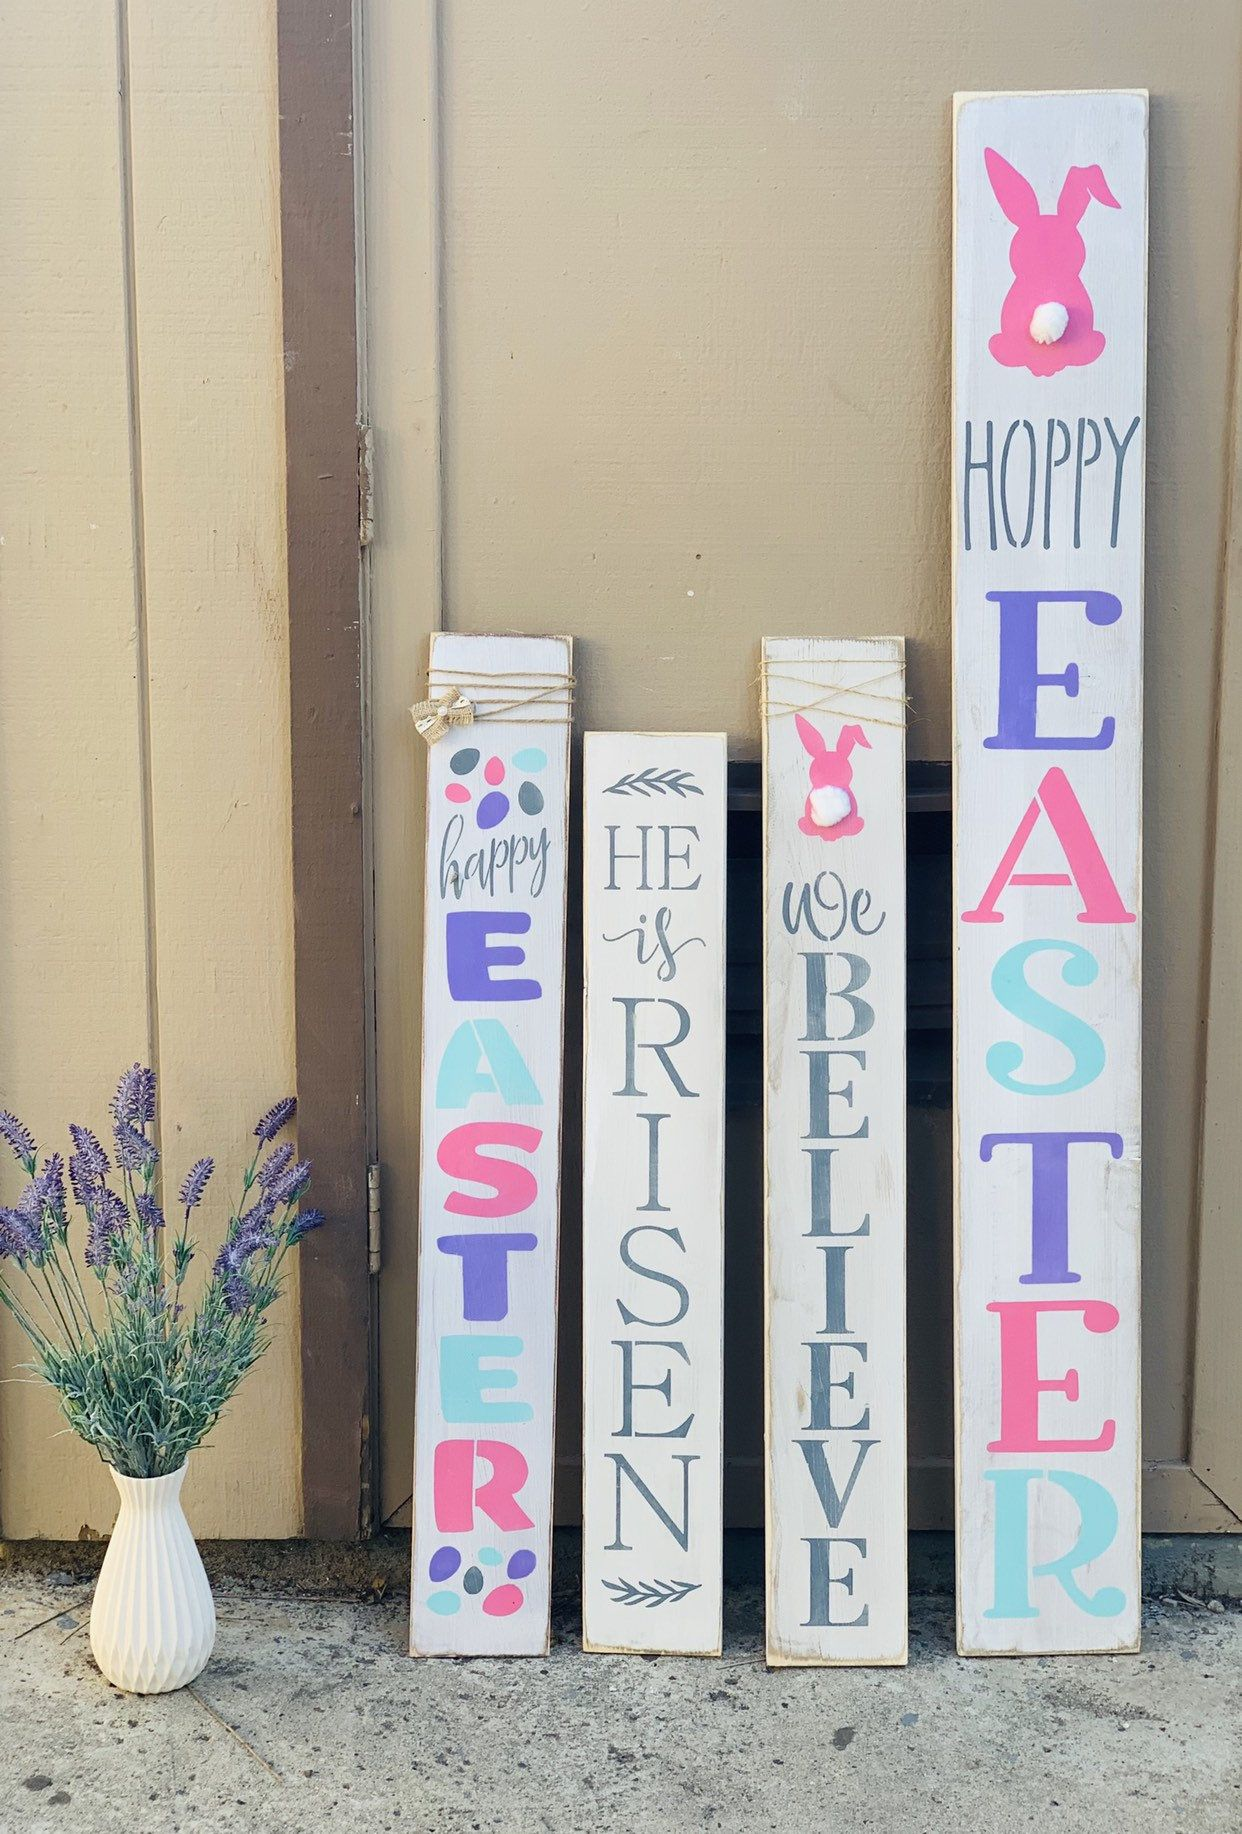 Large Easter Porch Sign Easter Bunny Stops Here Easter Porch Decor Easter Sign Happy Easter He Is Risen Hello Peeps Easter Porch Decor Easter Signs Easter Wood Signs